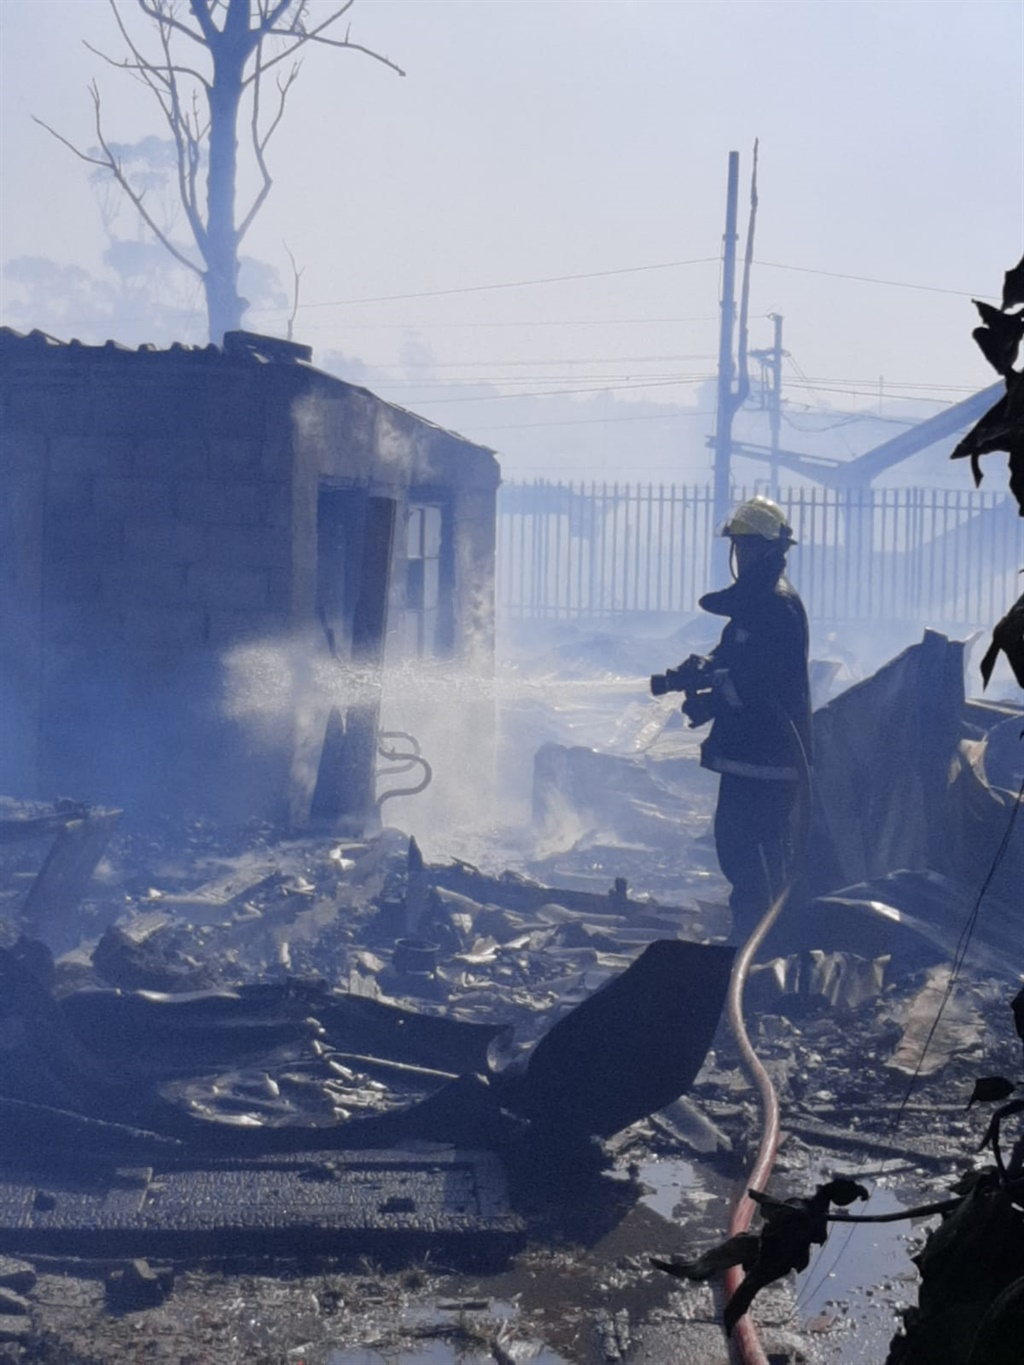 Fire being extinguished in KwaMashu